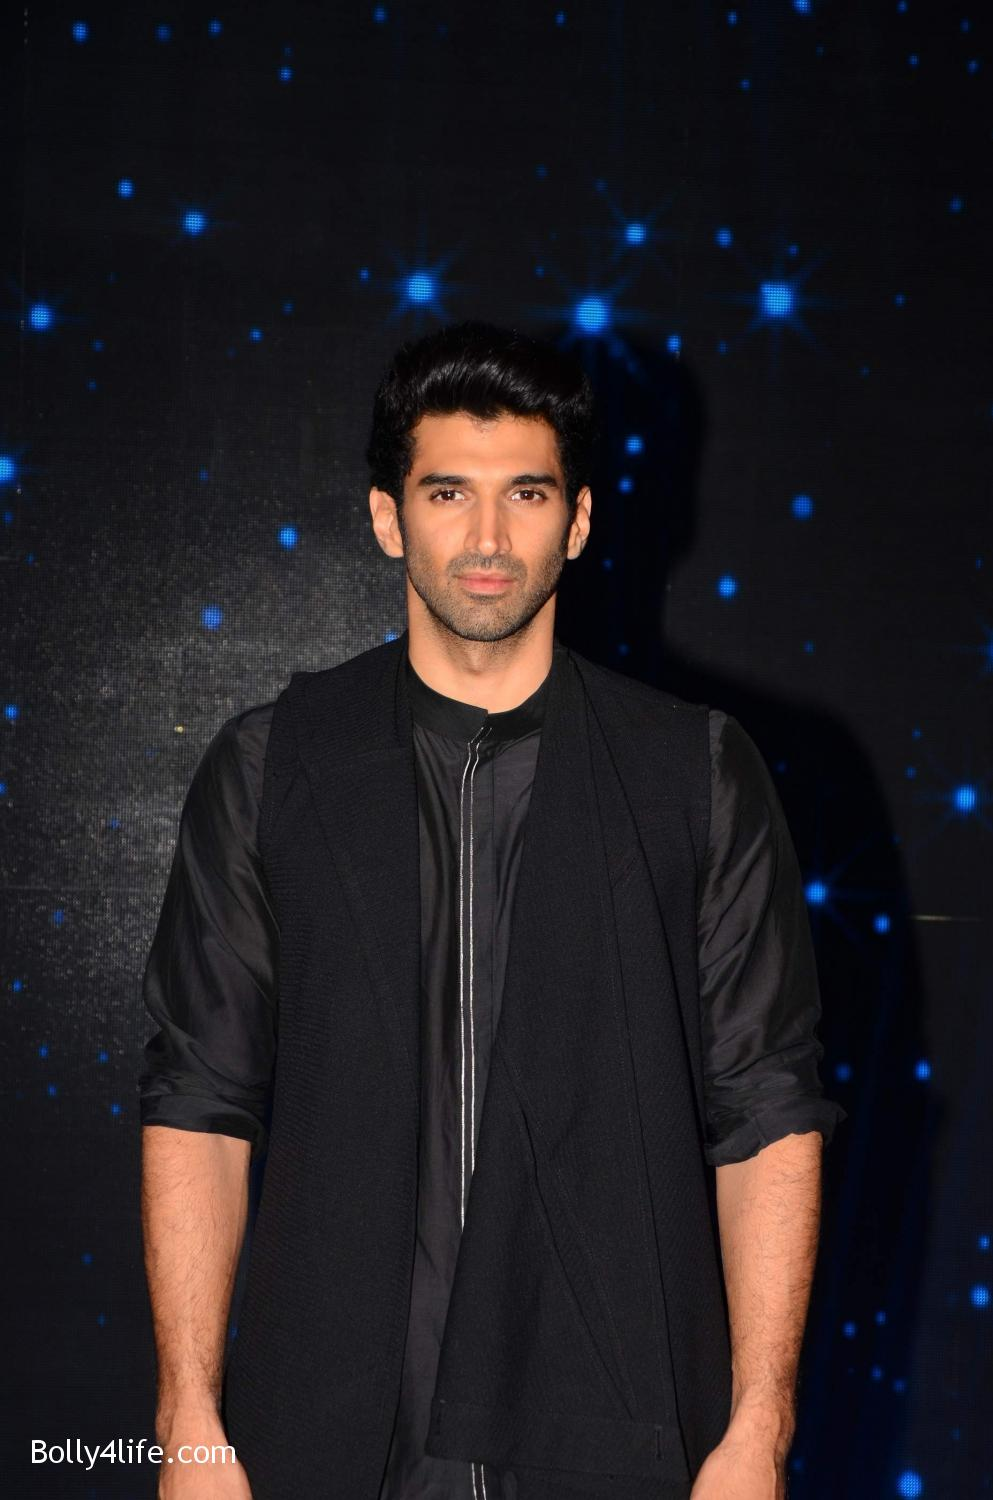 Shraddha-Kapoor-and-Aditya-Roy-Kapur-visit-on-the-set-of-Indian-Idol-Season-9-1.jpg